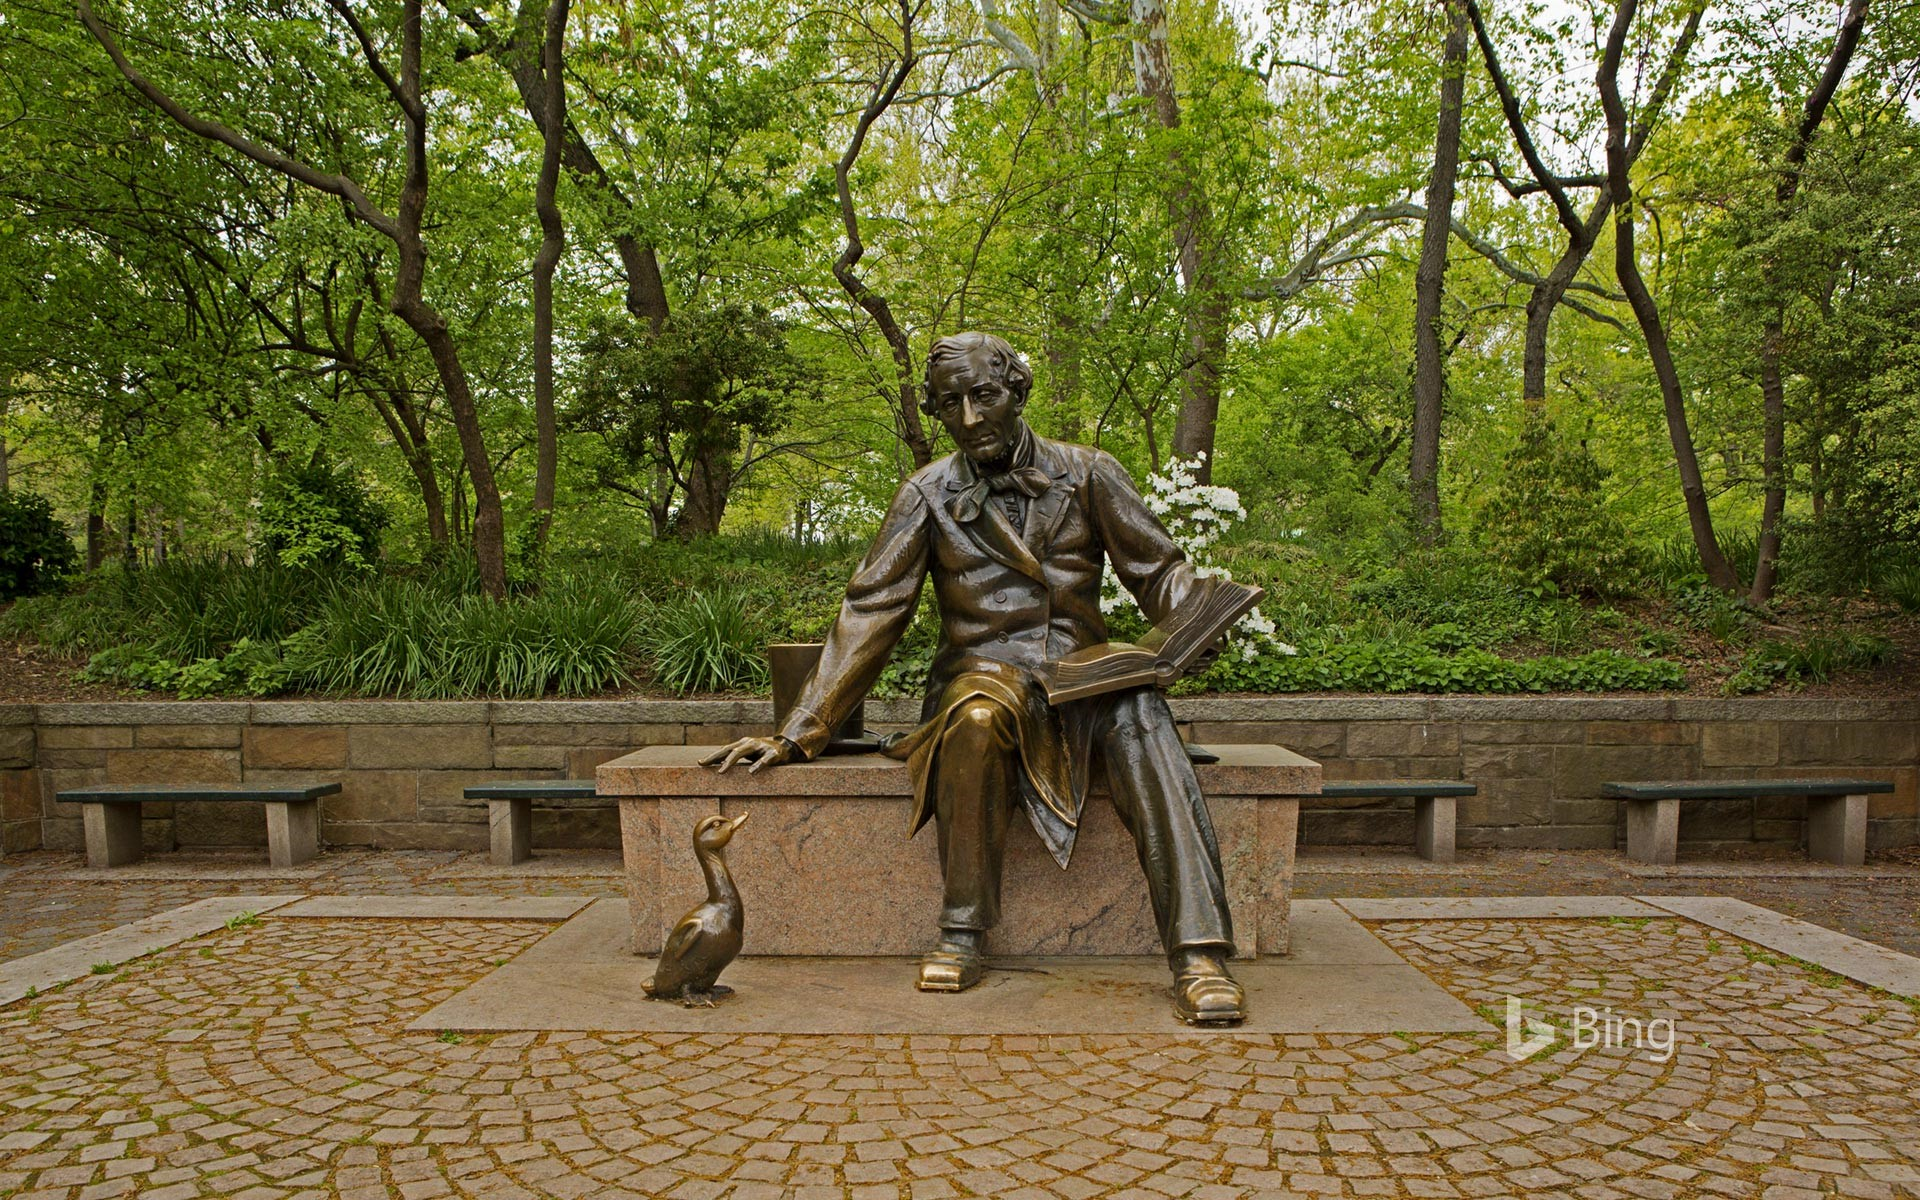 Statue of Hans Christian Andersen in New York City's Central Park